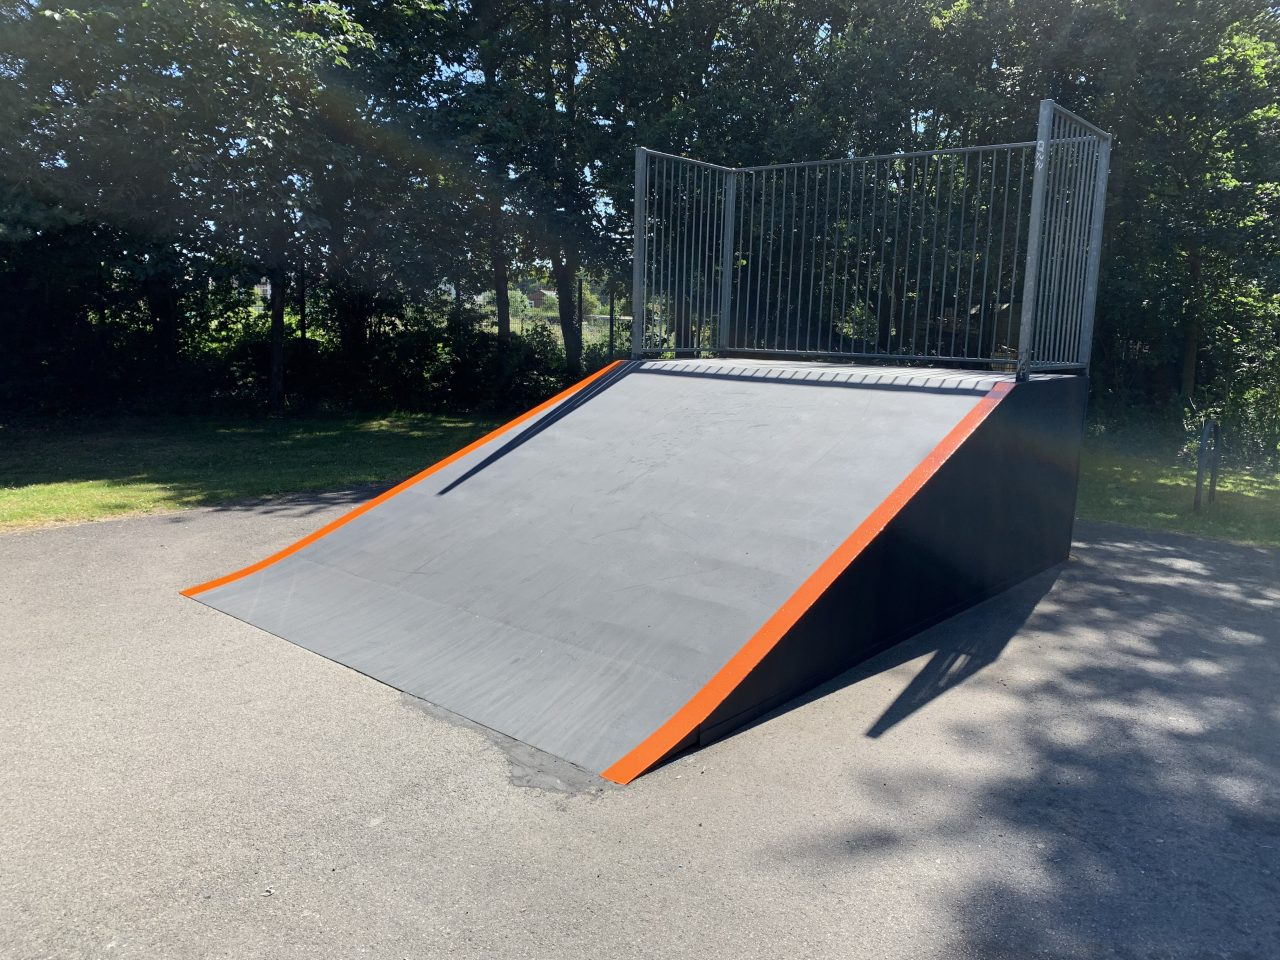 https://www.burghfieldparishcouncil.gov.uk/wp-content/uploads/2019/07/Skate-Park1-1280x960.jpg